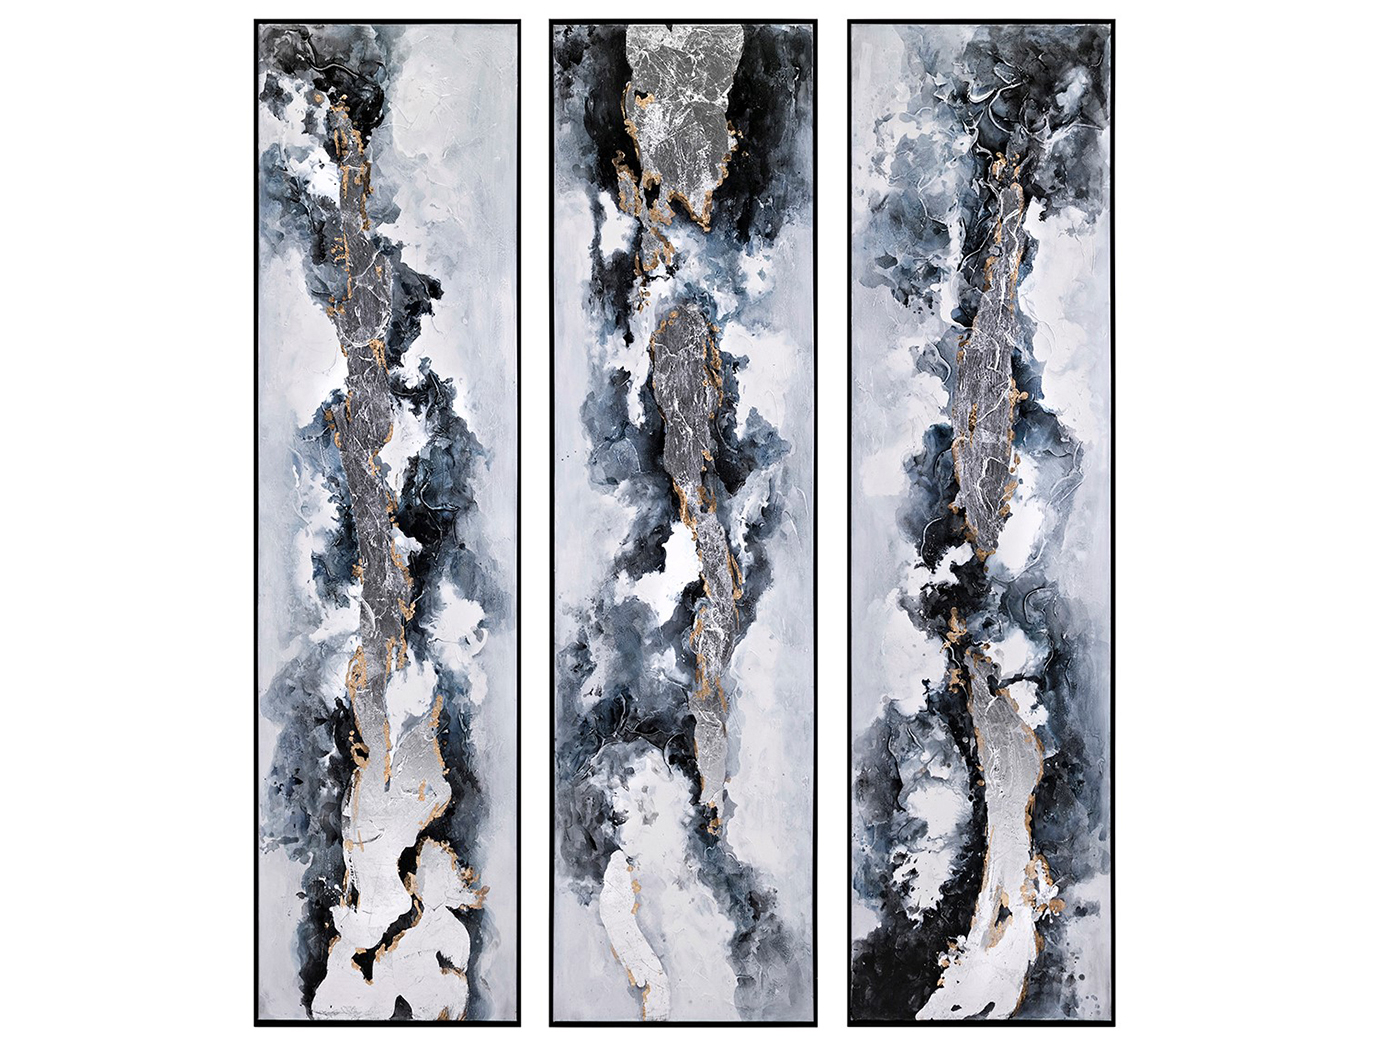 Accents - Wall Décor | Steinhafels with regard to 4 Piece Metal Wall Decor Sets (Image 9 of 30)